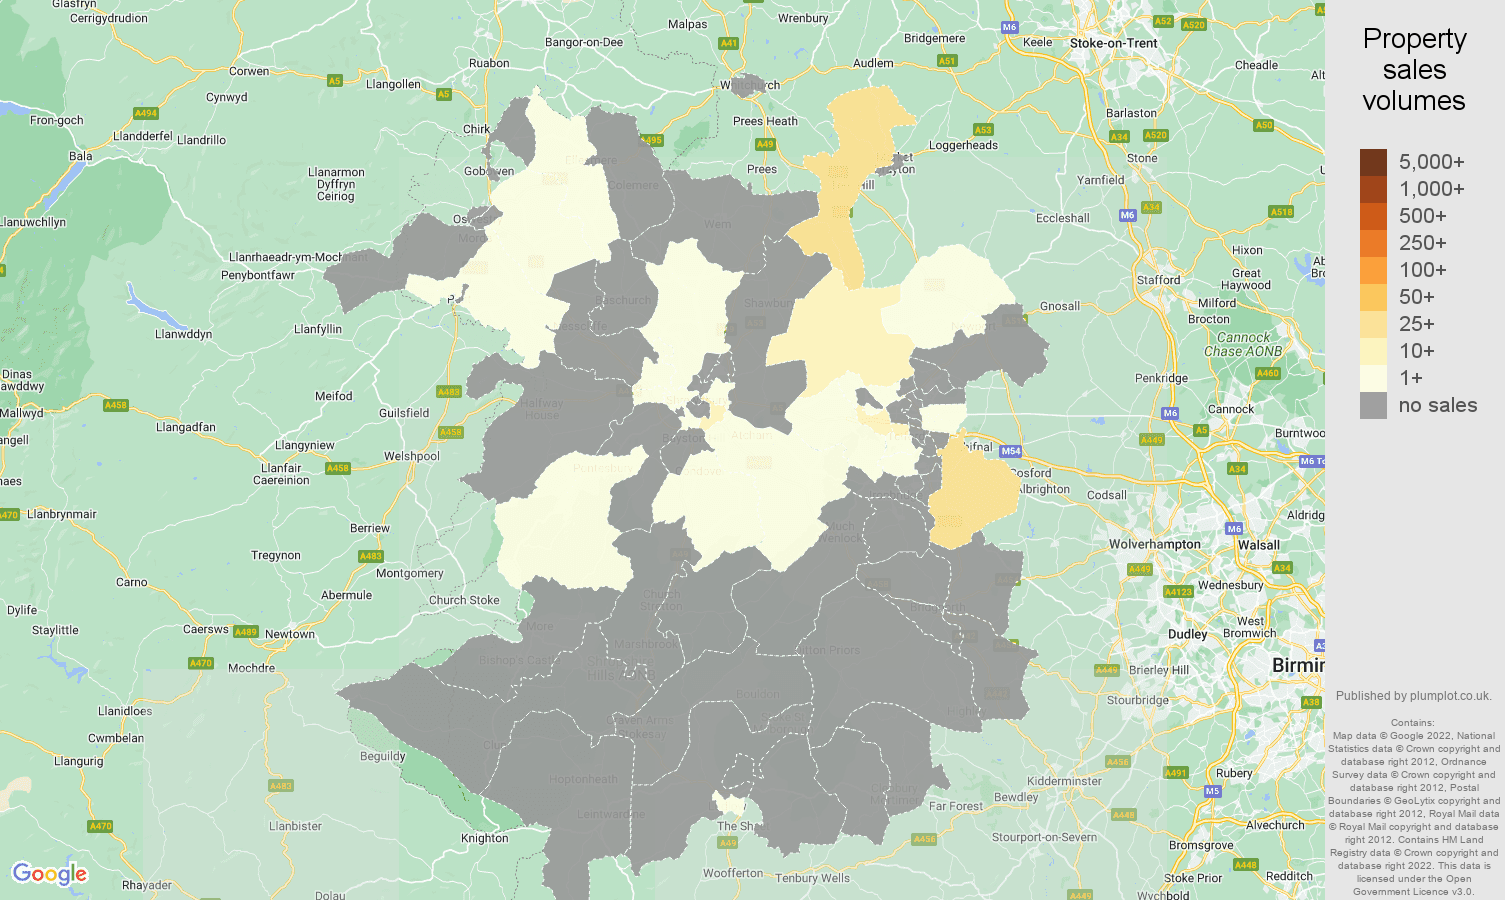 Shropshire map of sales of new properties